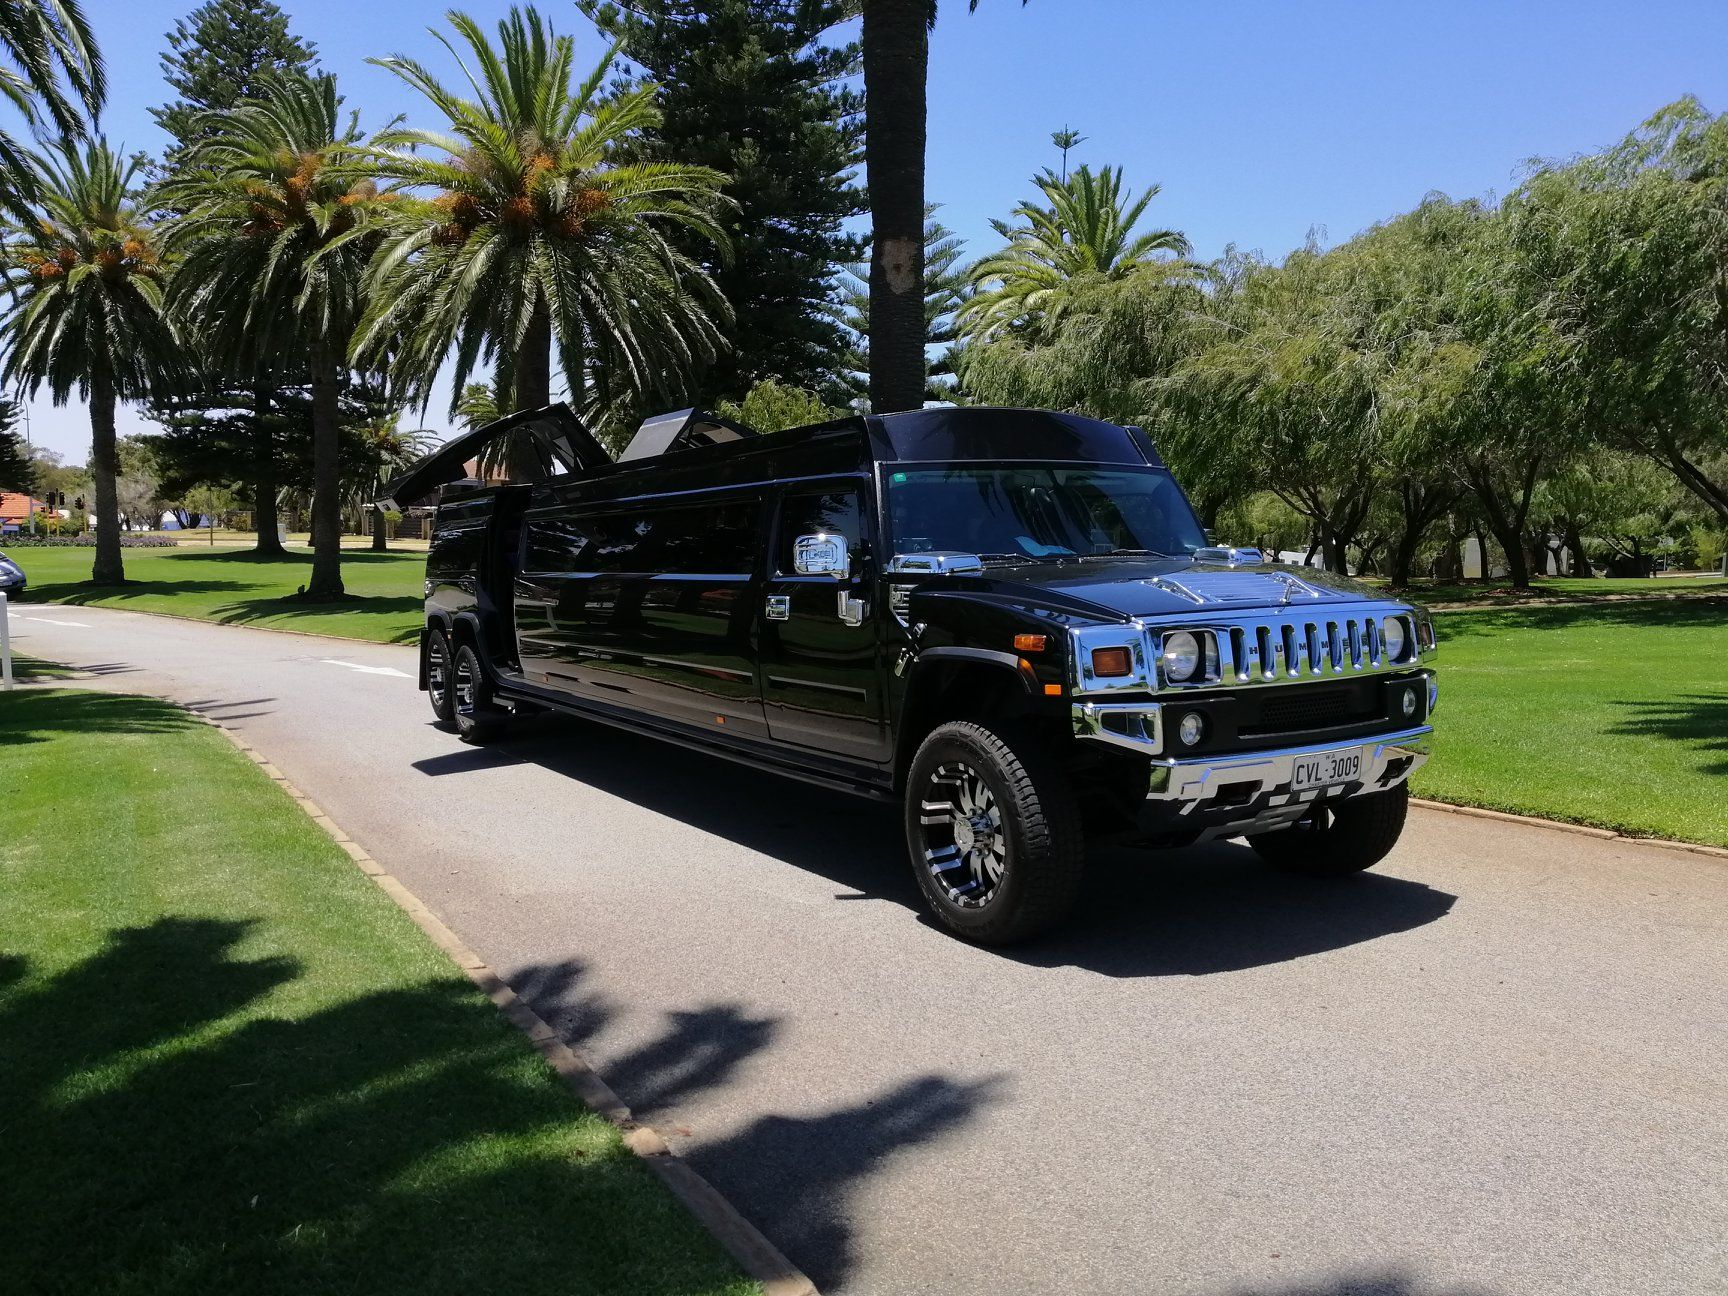 Black Hummer limo hire Perth. When arriving in style is a ... | black hummer limo hire